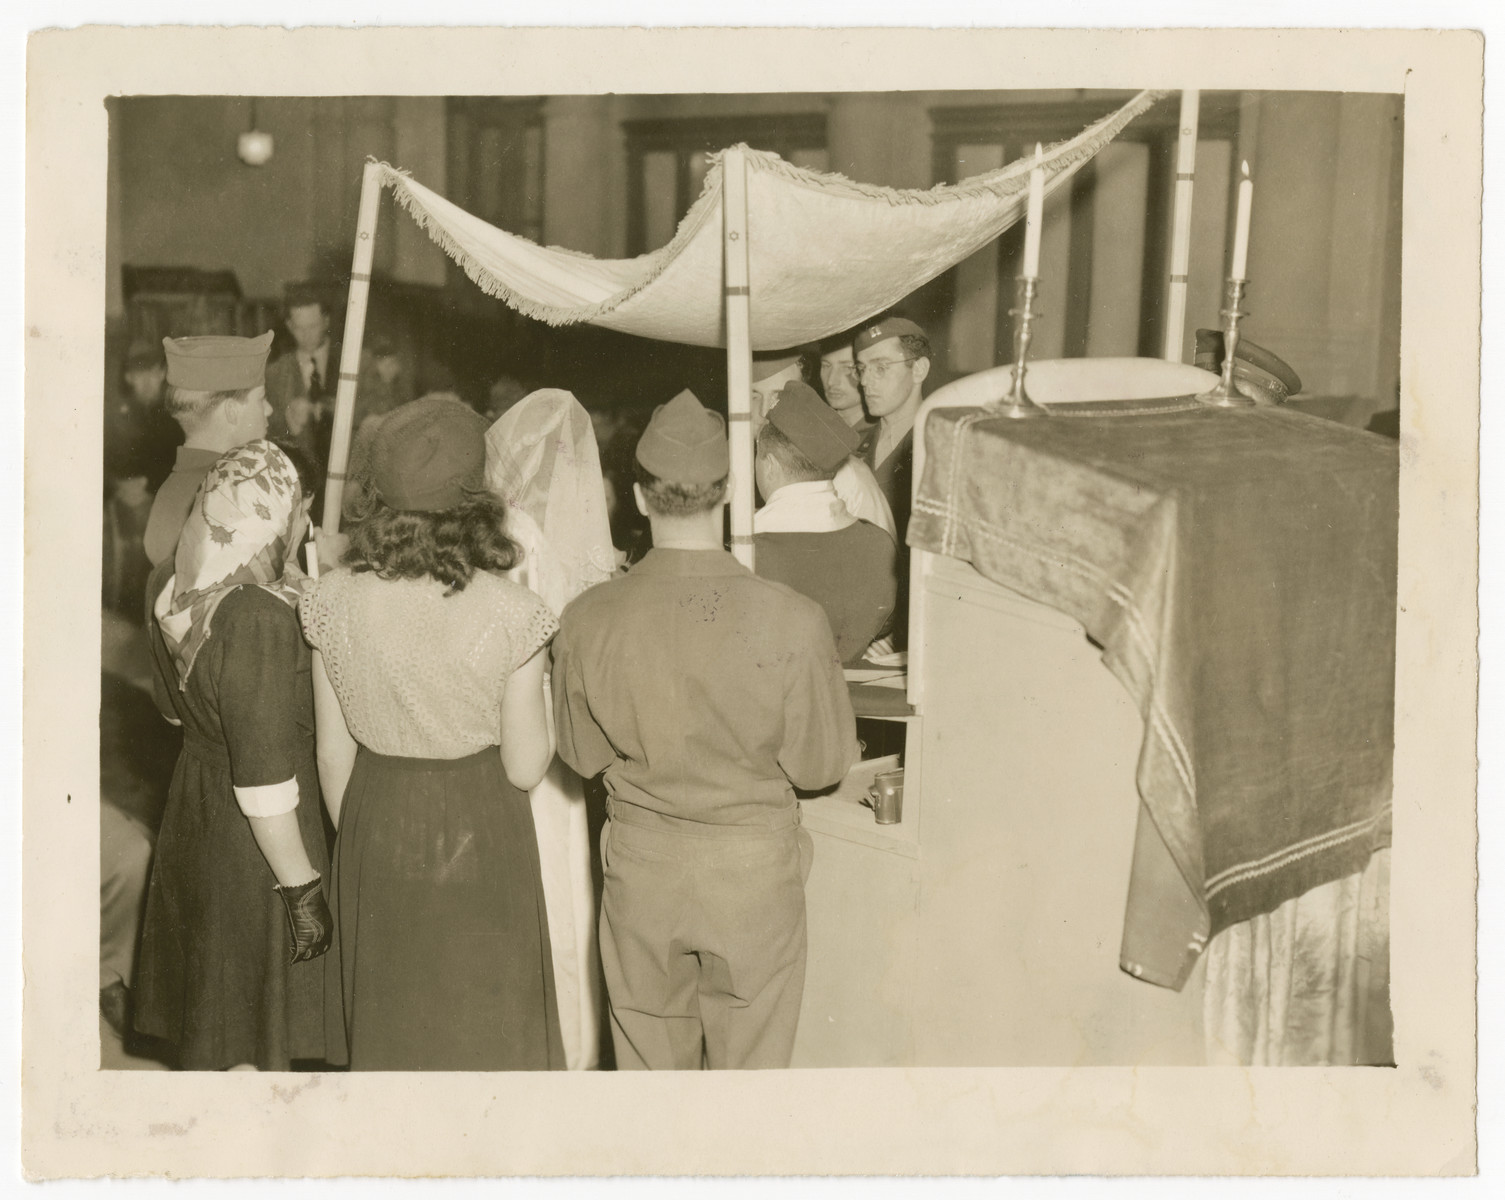 Rabbi William Dalin officiates at a wedding in the Zeilsheim displaced person camp.  Escorting the couple are American aid workers Lorna and Gil Adelman.